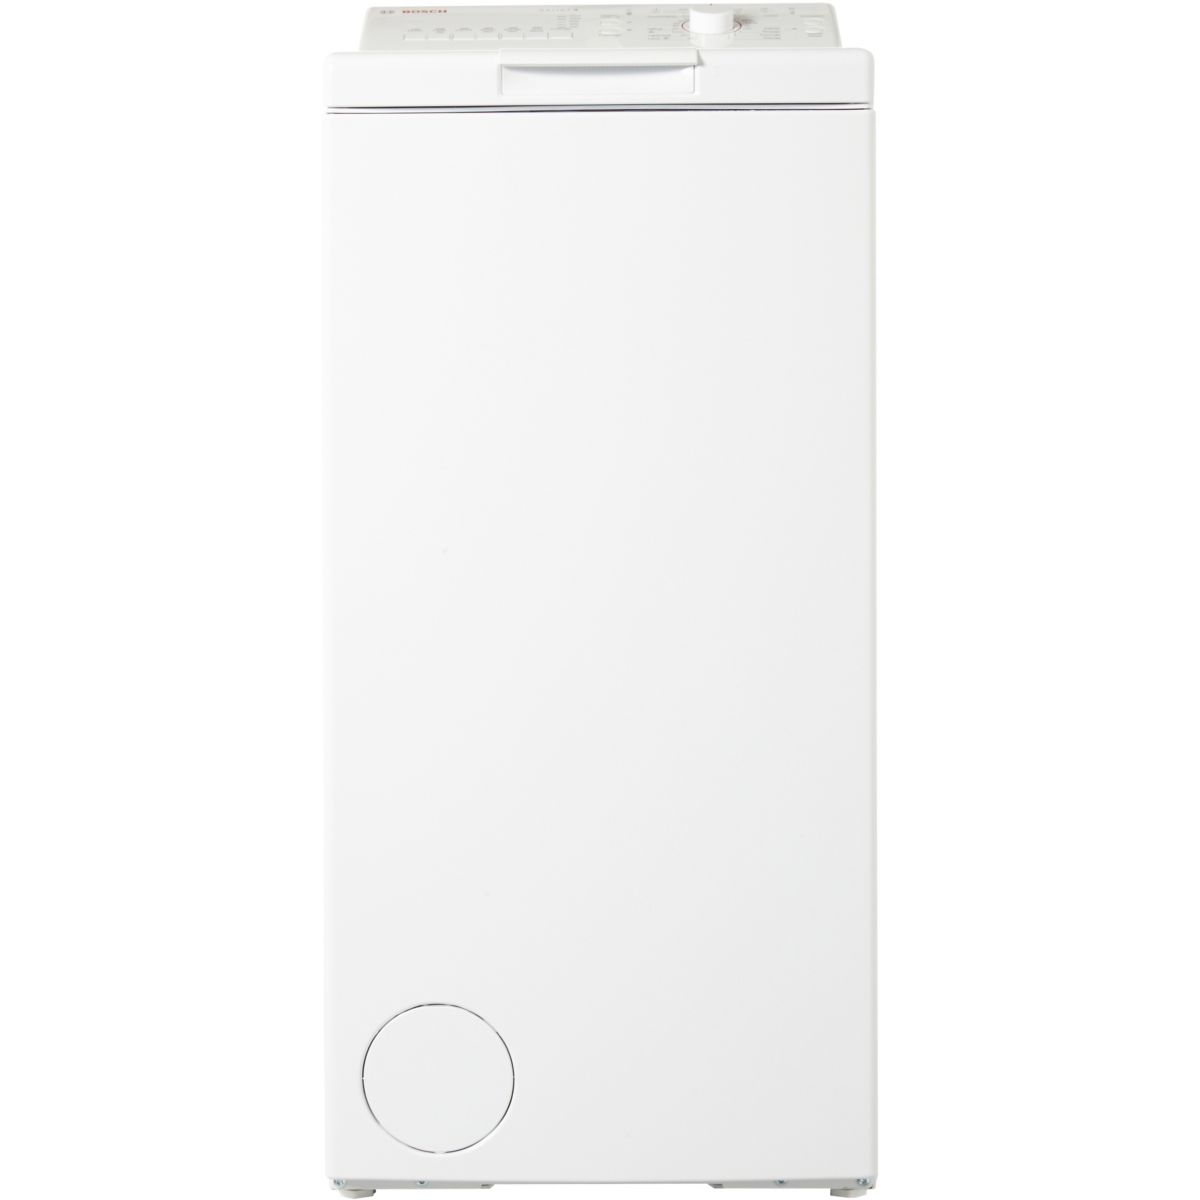 Lave linge top bosch wor 24156ff (photo)